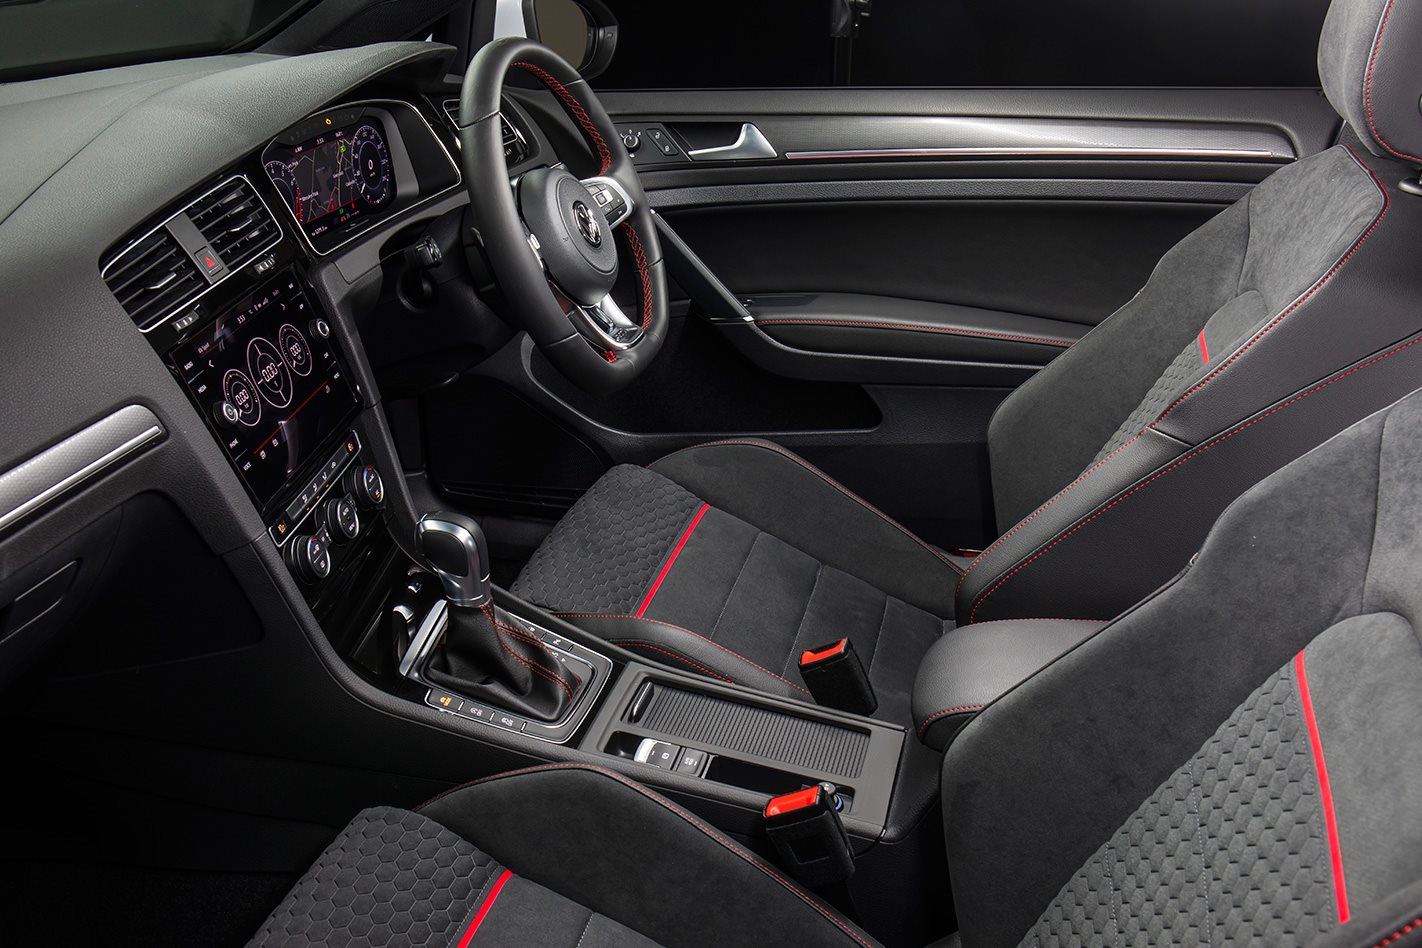 2017 Volkswagen Golf GTI Performance interior.jpg